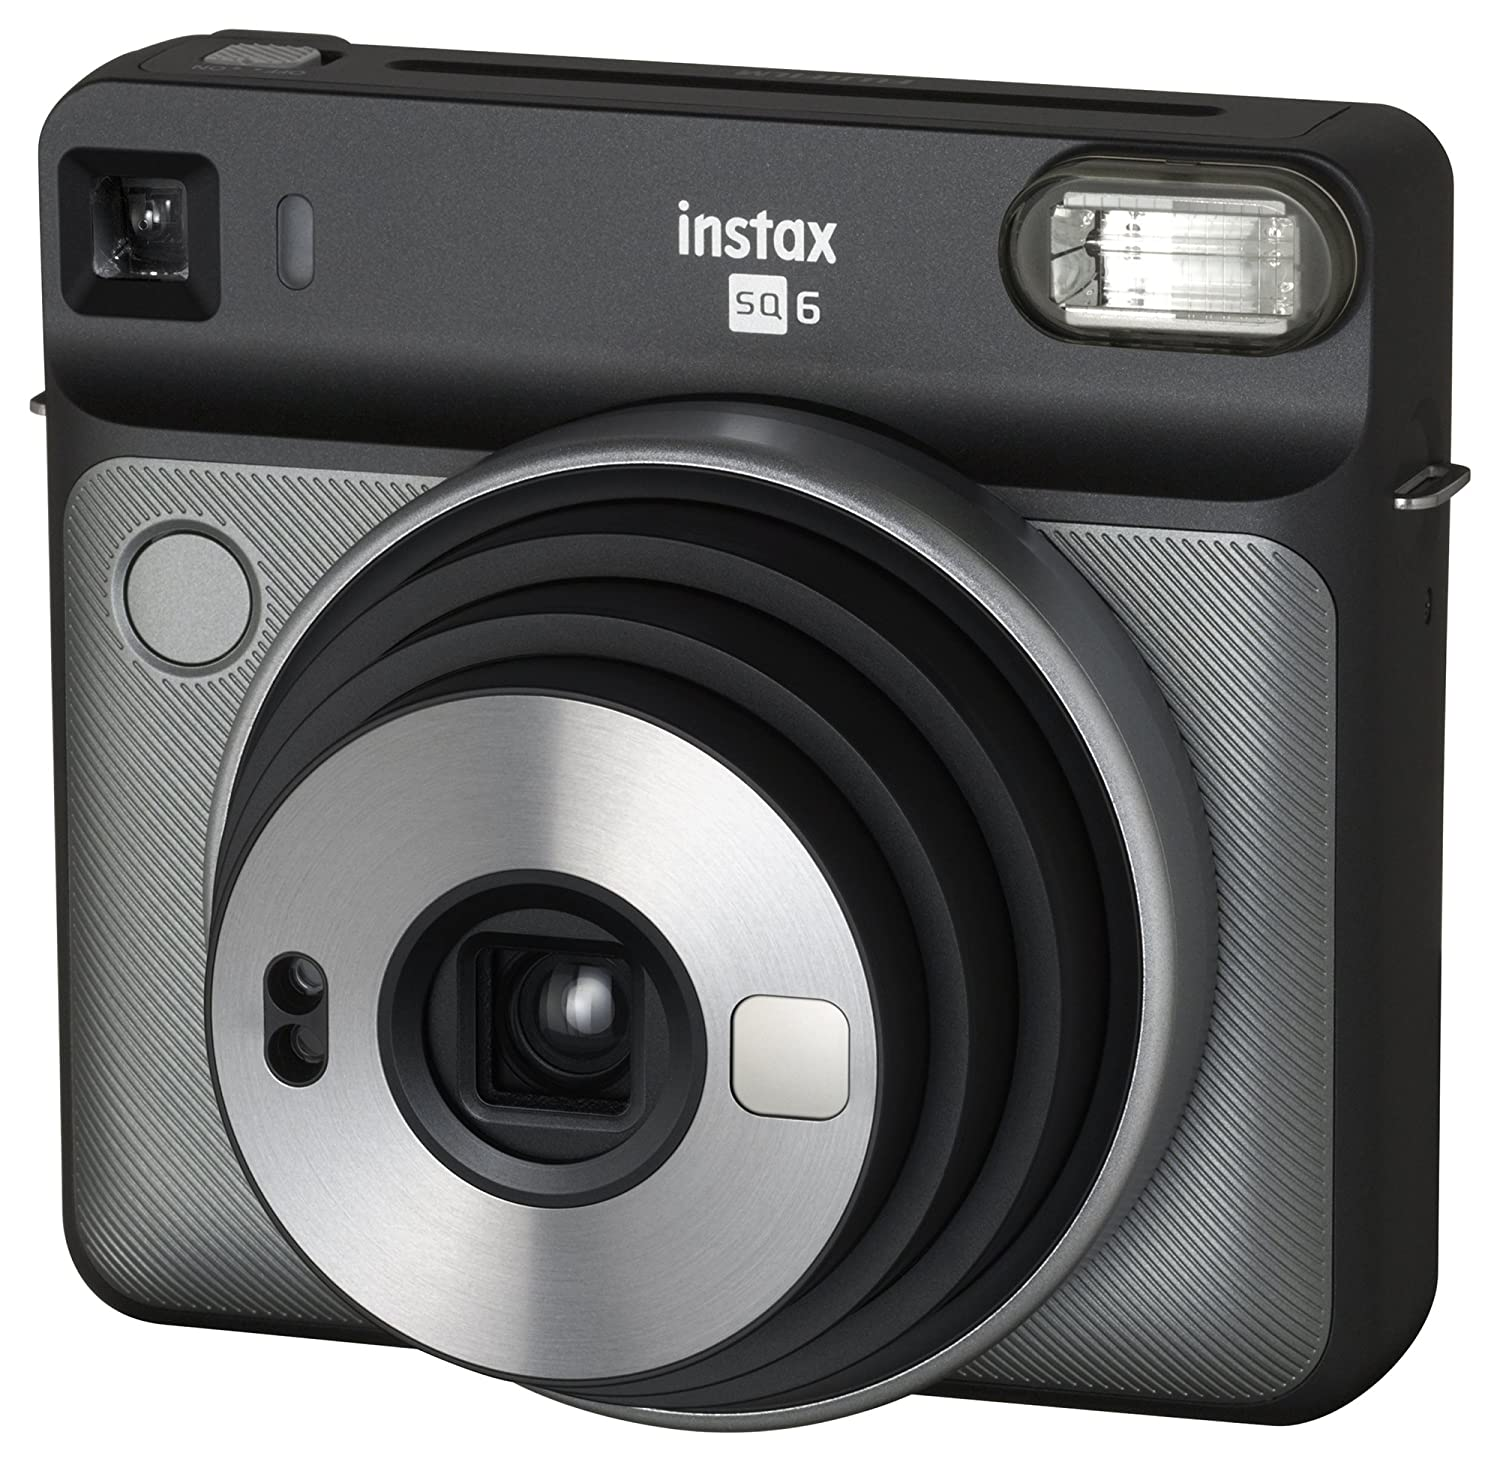 Fujifilm Instax Square SQ6 Review